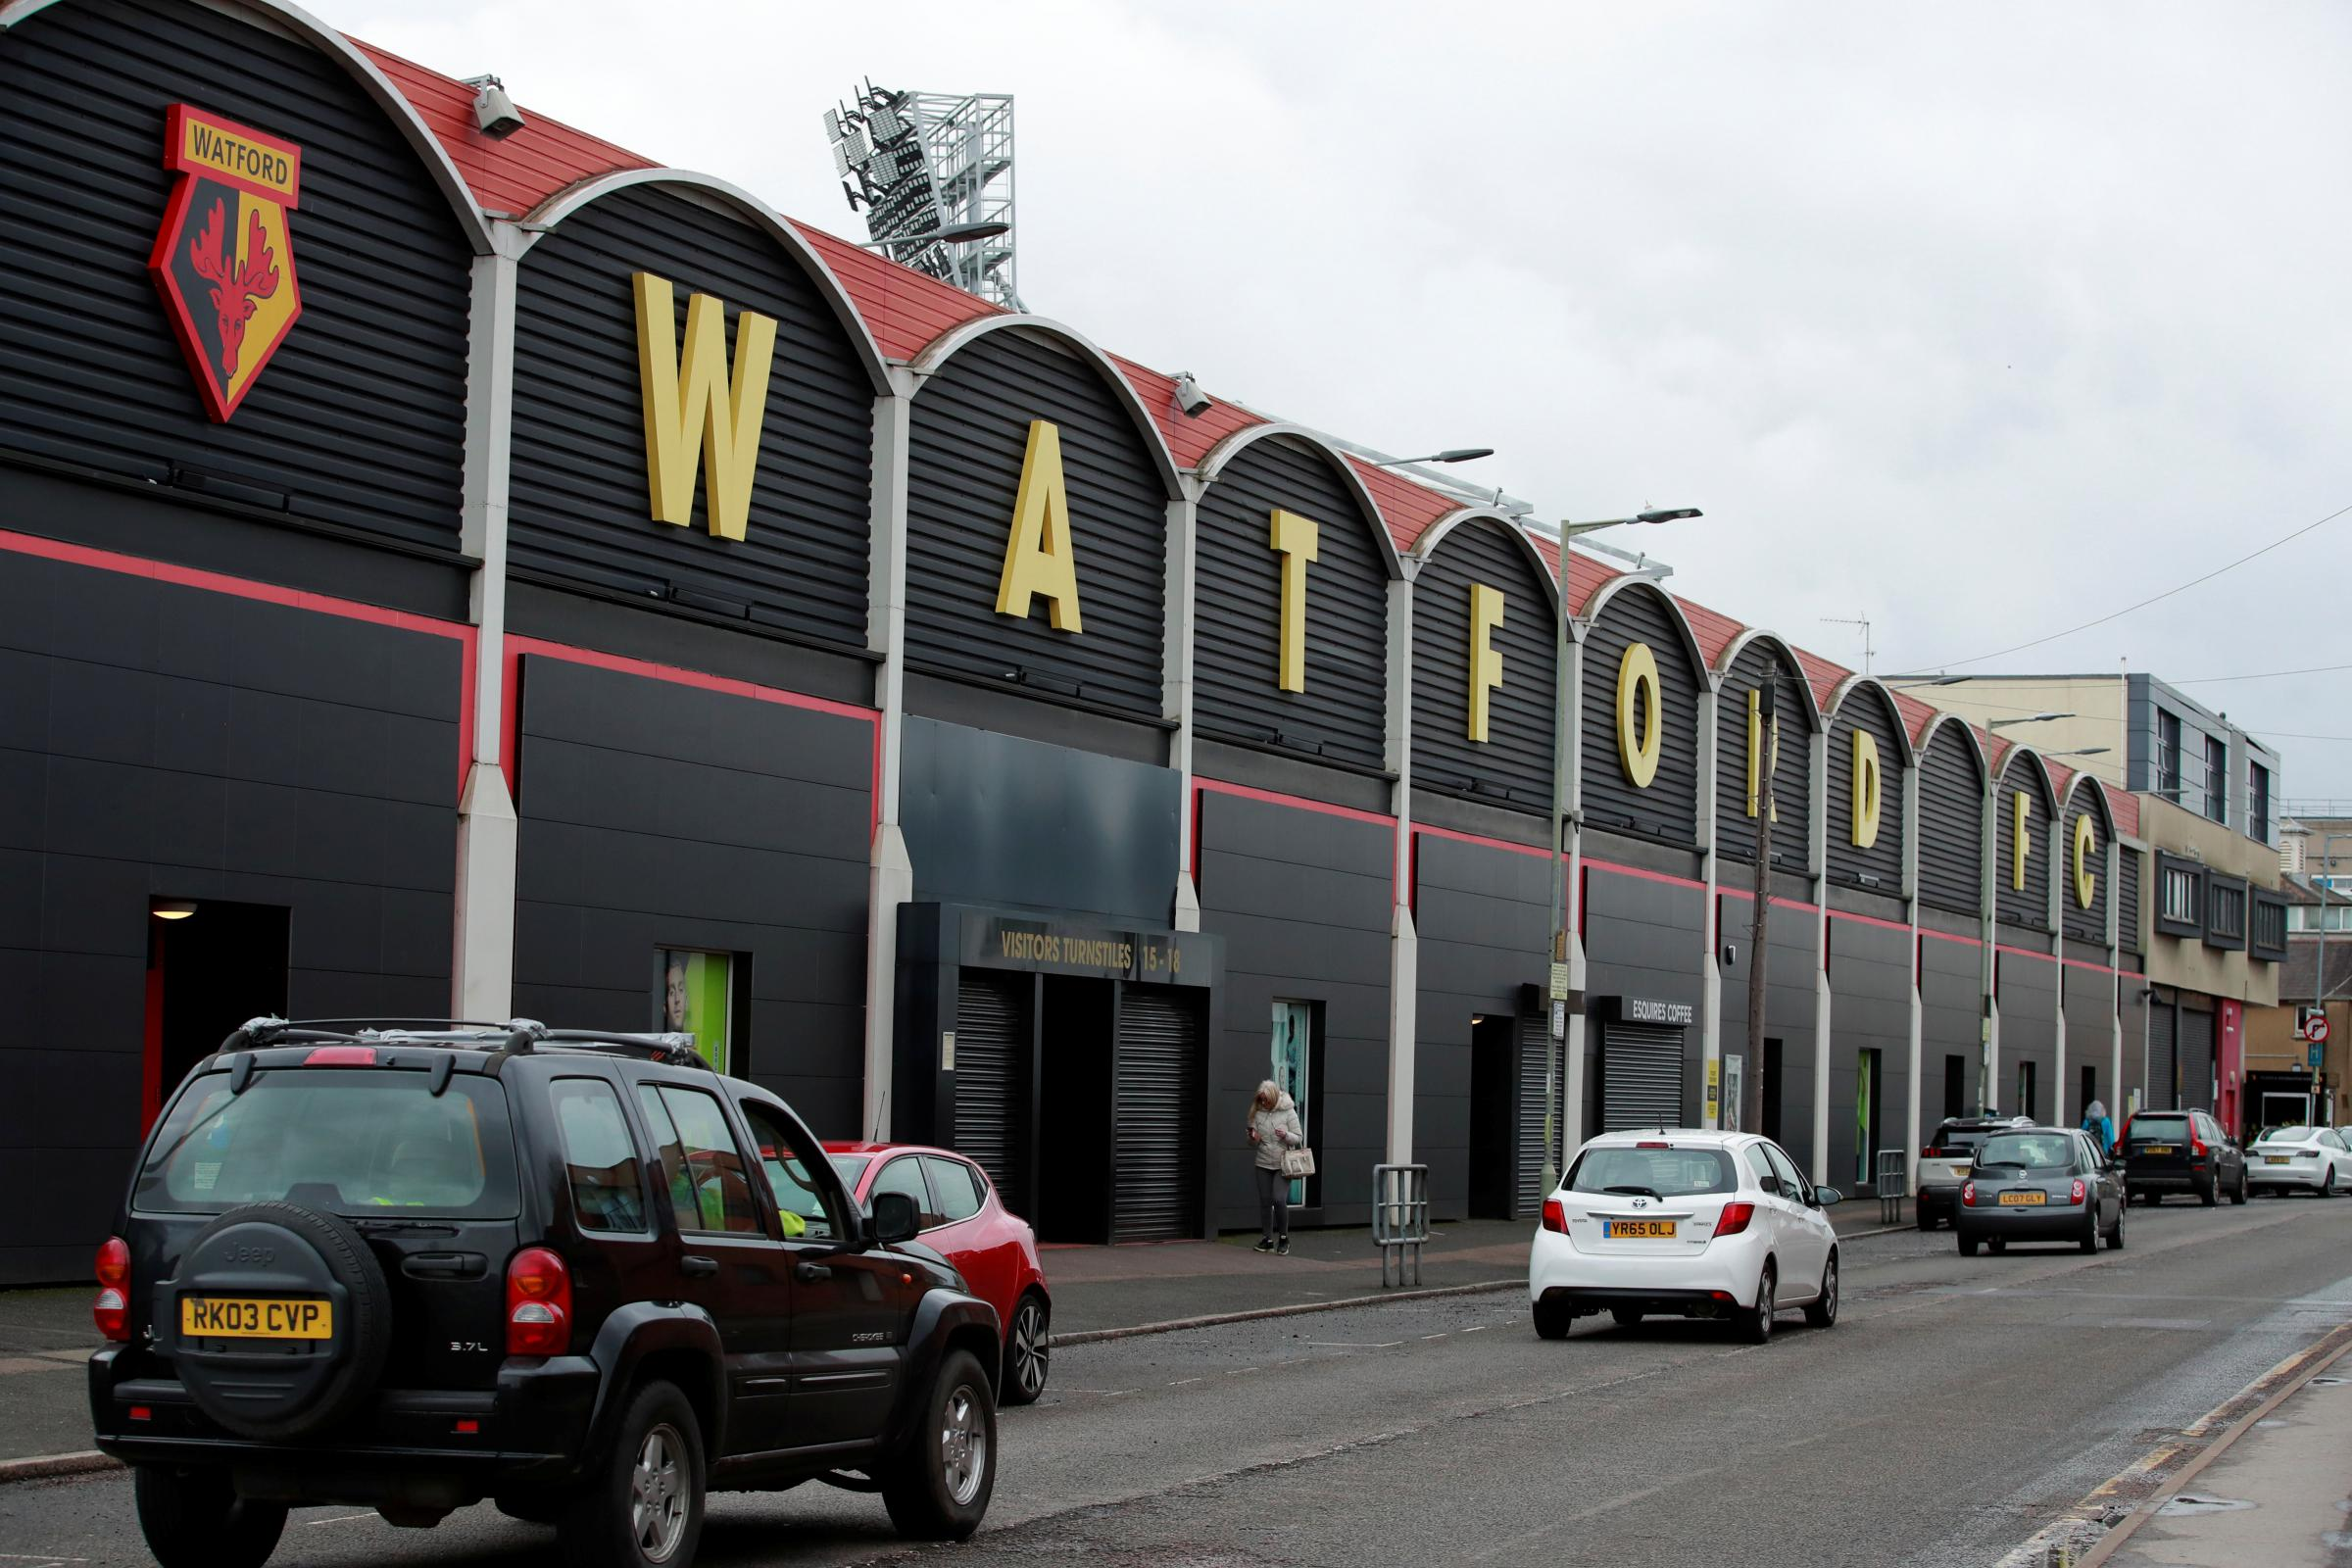 Coronavirus: Watford has offered use of Vicarage Road to the NHS